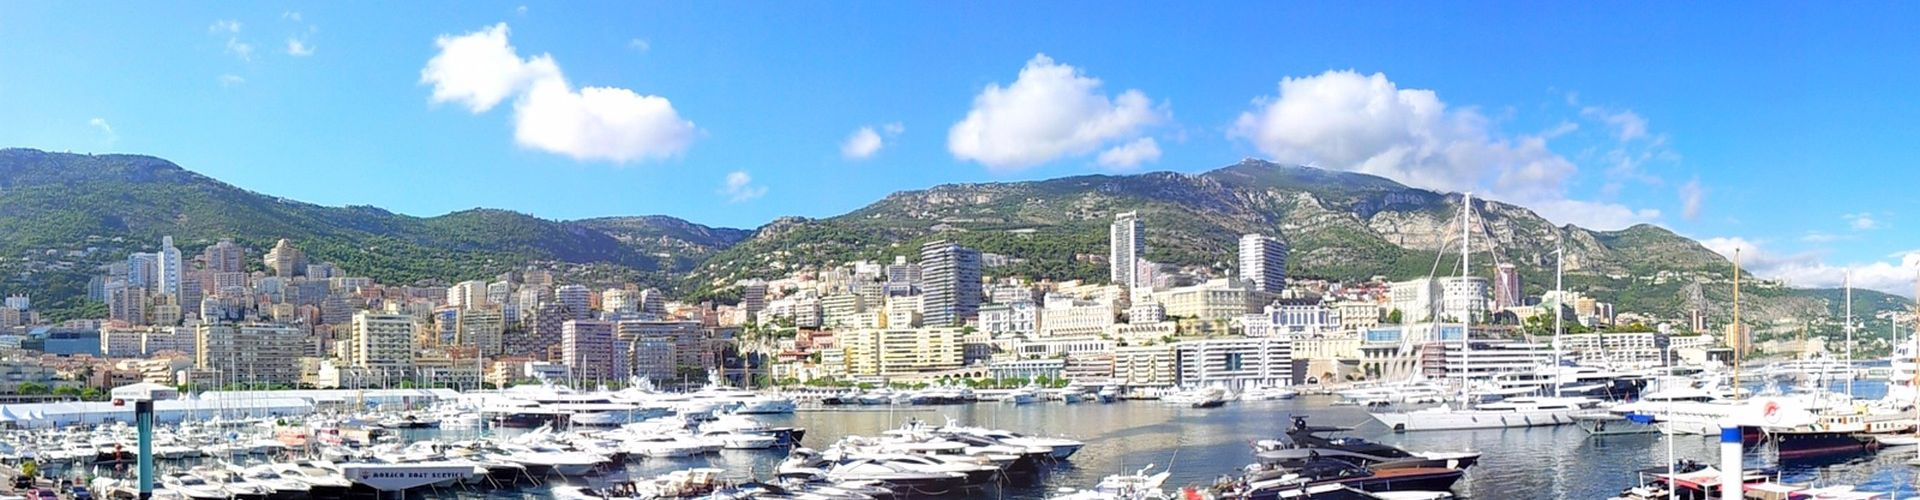 Real estate - Purchase sale duplex penthouse Monaco Monte Carlo